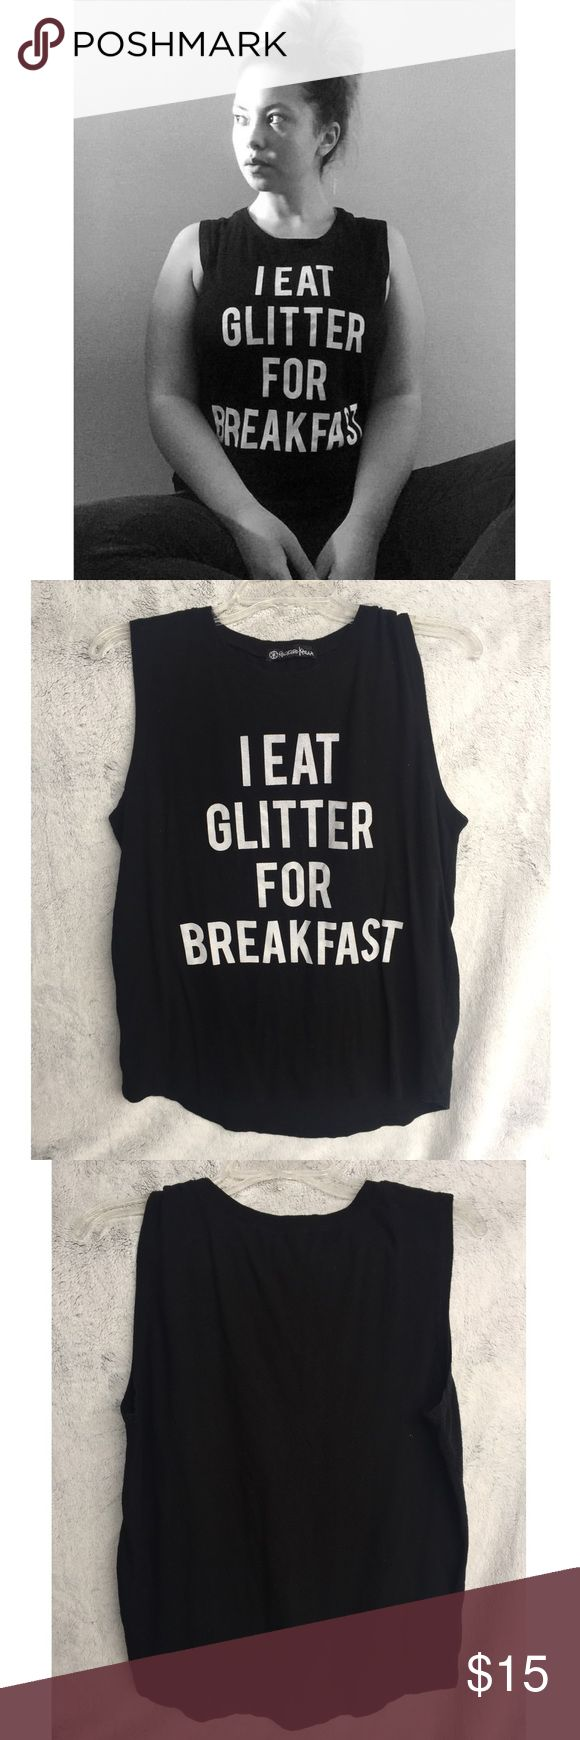 """-new- """"I eat glitter for breakfast"""" Muscle Tank A great workout top or every day tank! Great used condition.   ✔️If you'd like to MAKE AN OFFER please do so through the offer button ONLY. I won't negotiate prices in the comments.  ✔️All sale items, items $15 and under, & clearance items are firm unless BUNDLED.  ❌No trades, PayPal, Holds 📷Instagram: @lovelionessie Tops Tank Tops"""